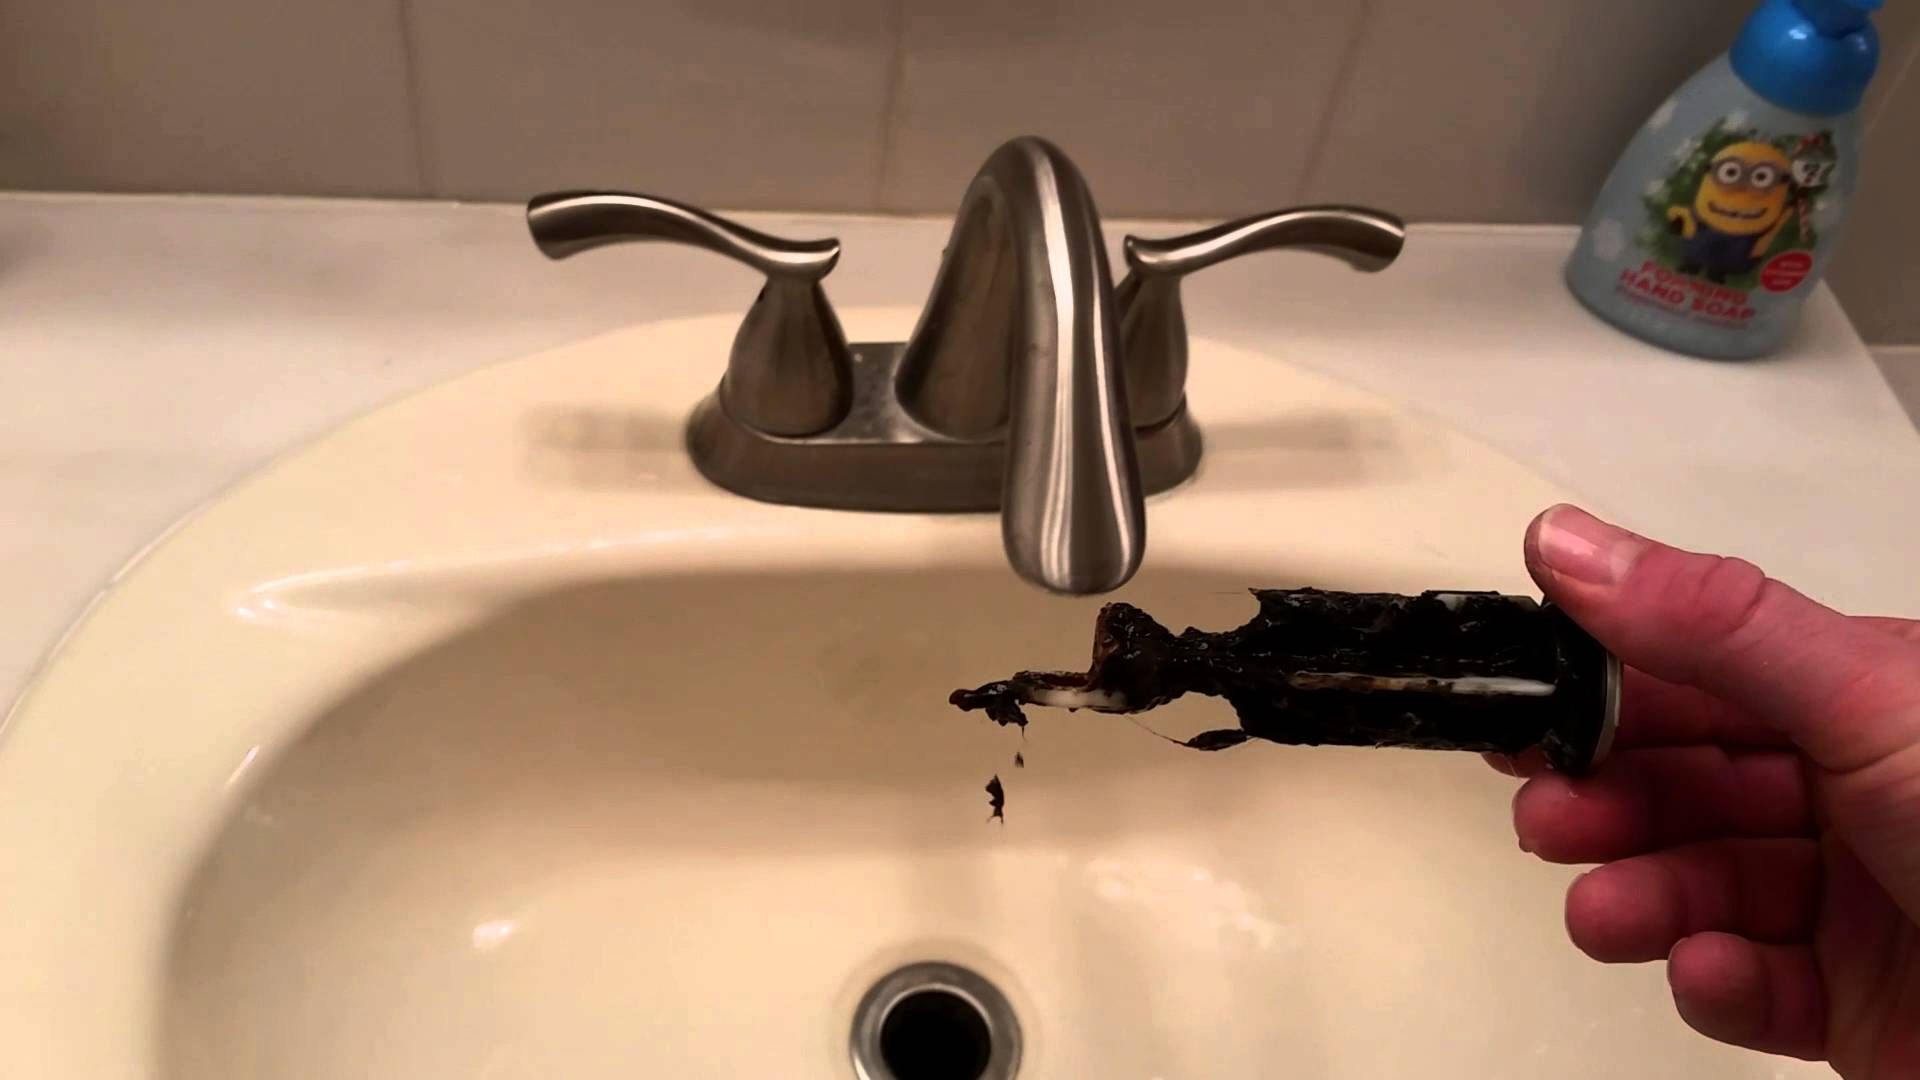 Bathroom Sink quick fix How to remove and clean the